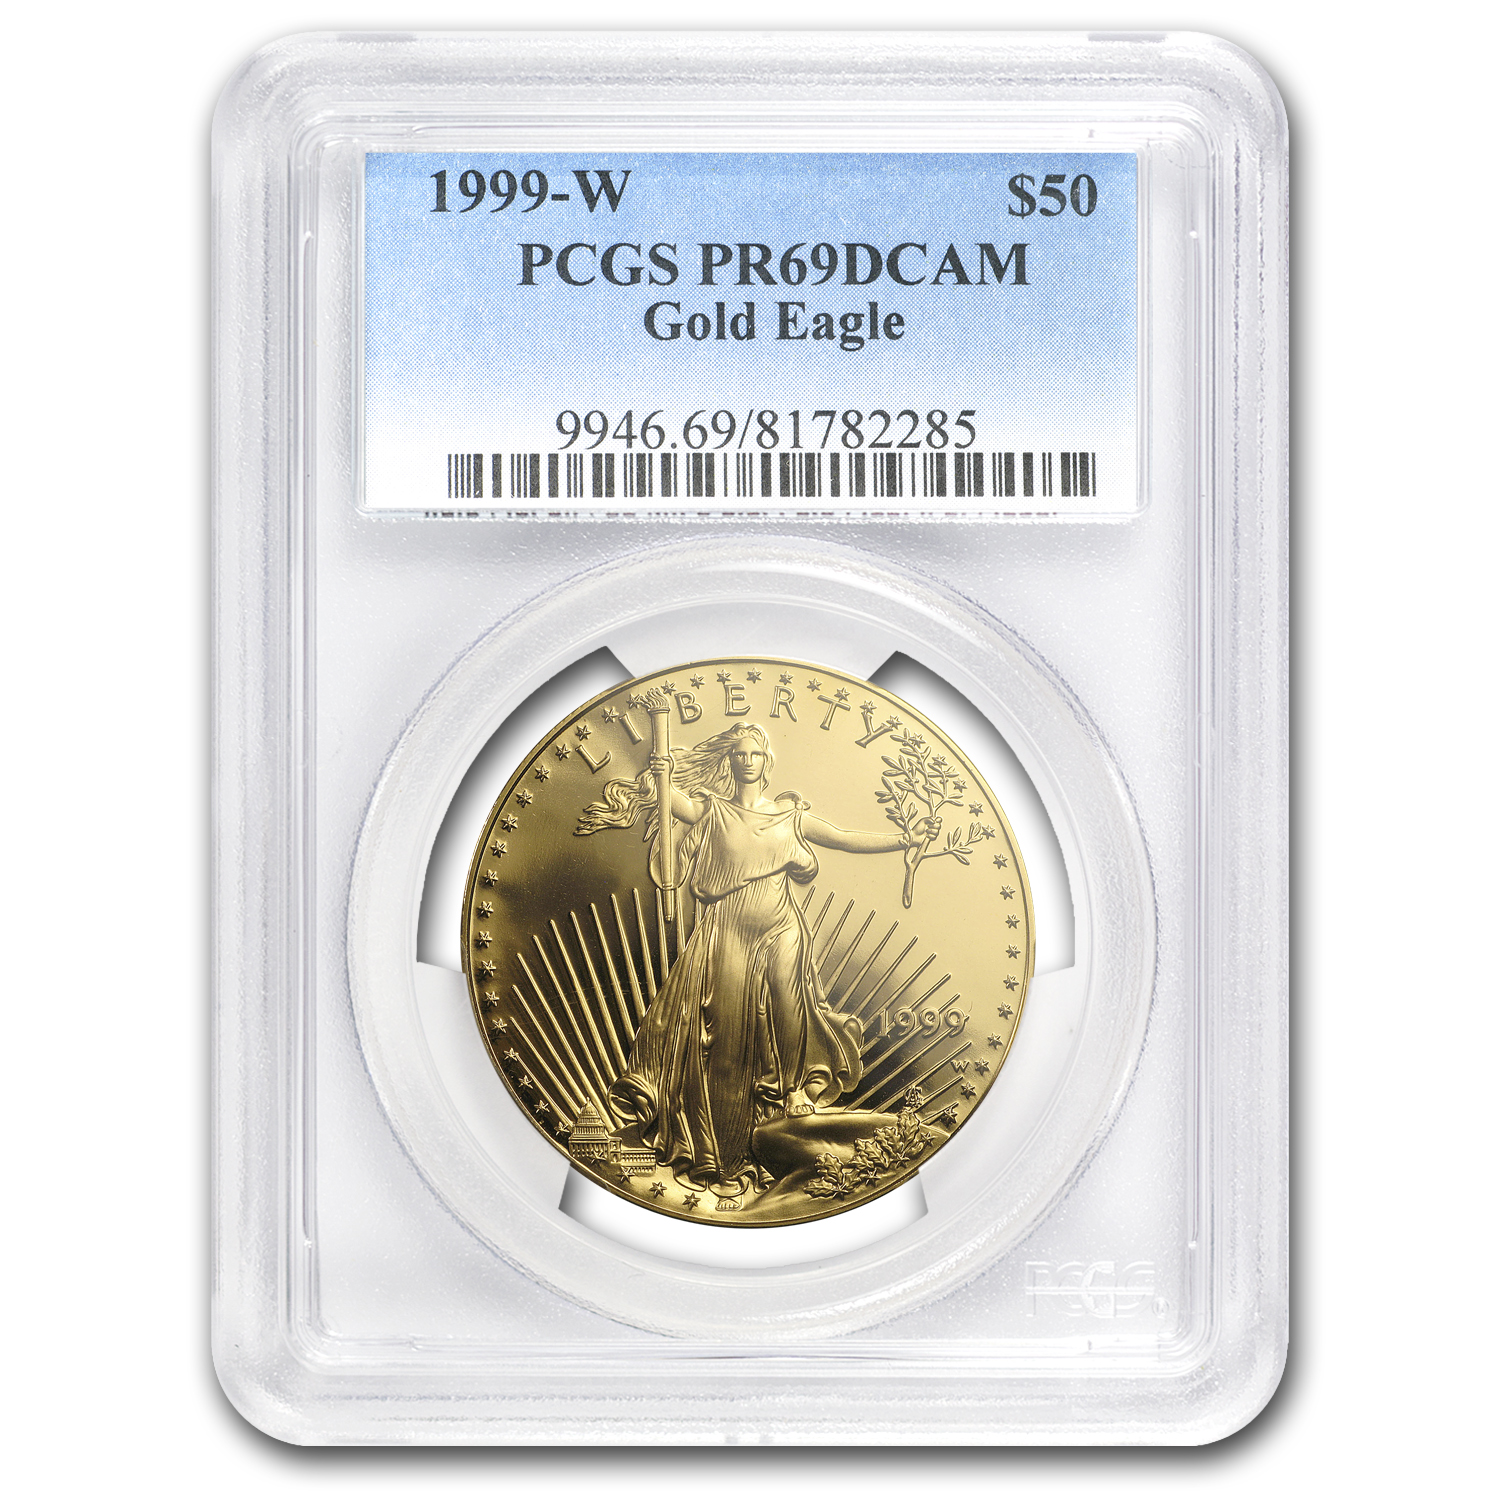 1999-W 1 oz Proof Gold American Eagle PR-69 PCGS